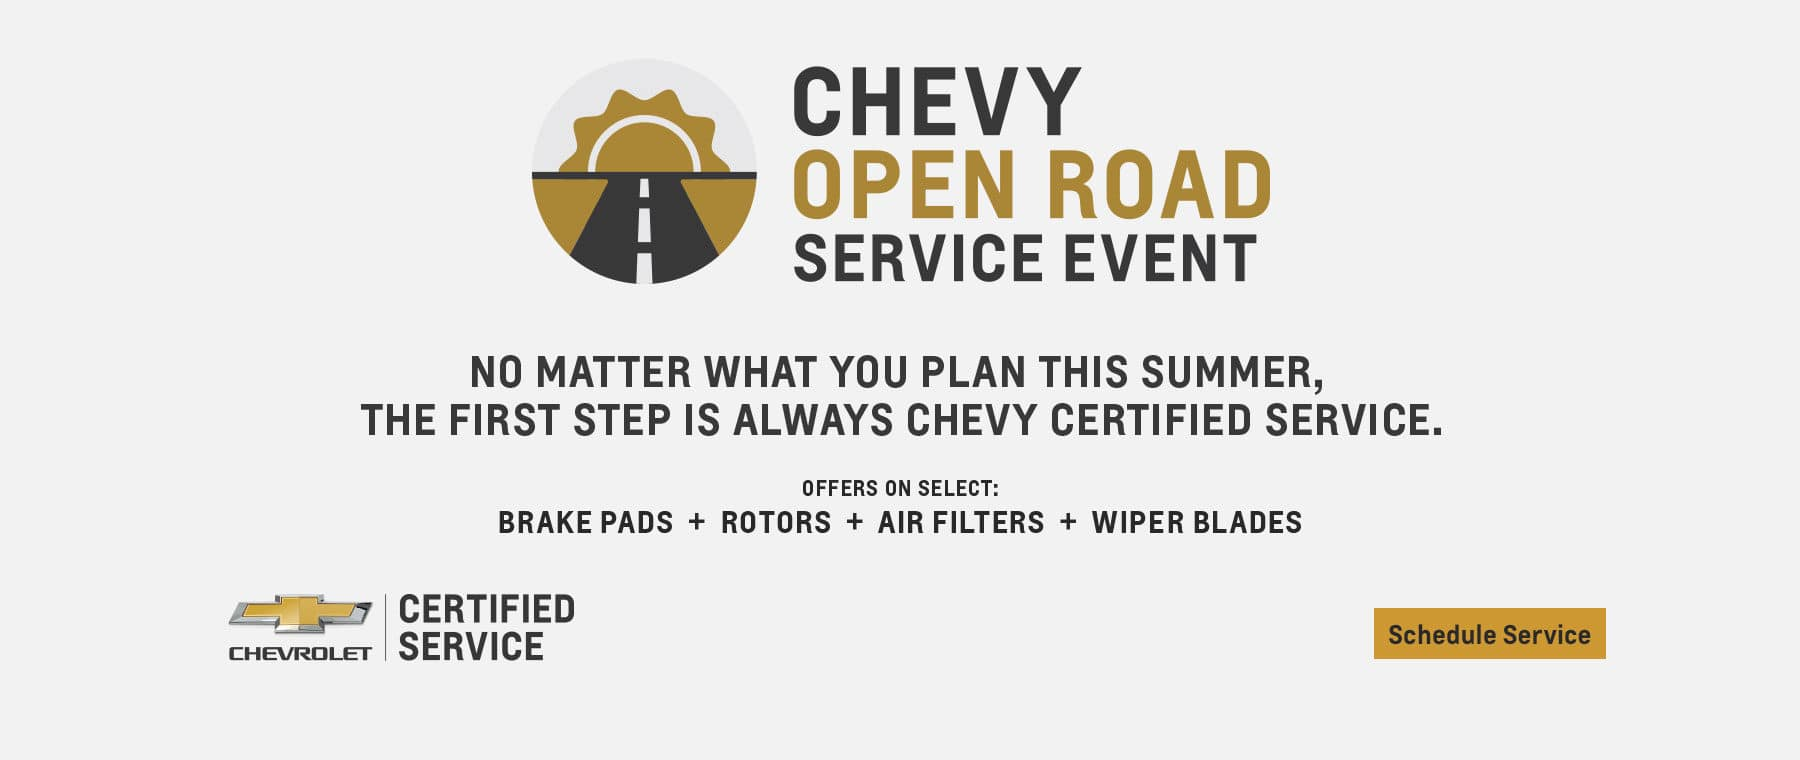 02_2021_July_ChevyCertifiedService_OpenRoadServiceEvent_LogoHeadline_1800x760